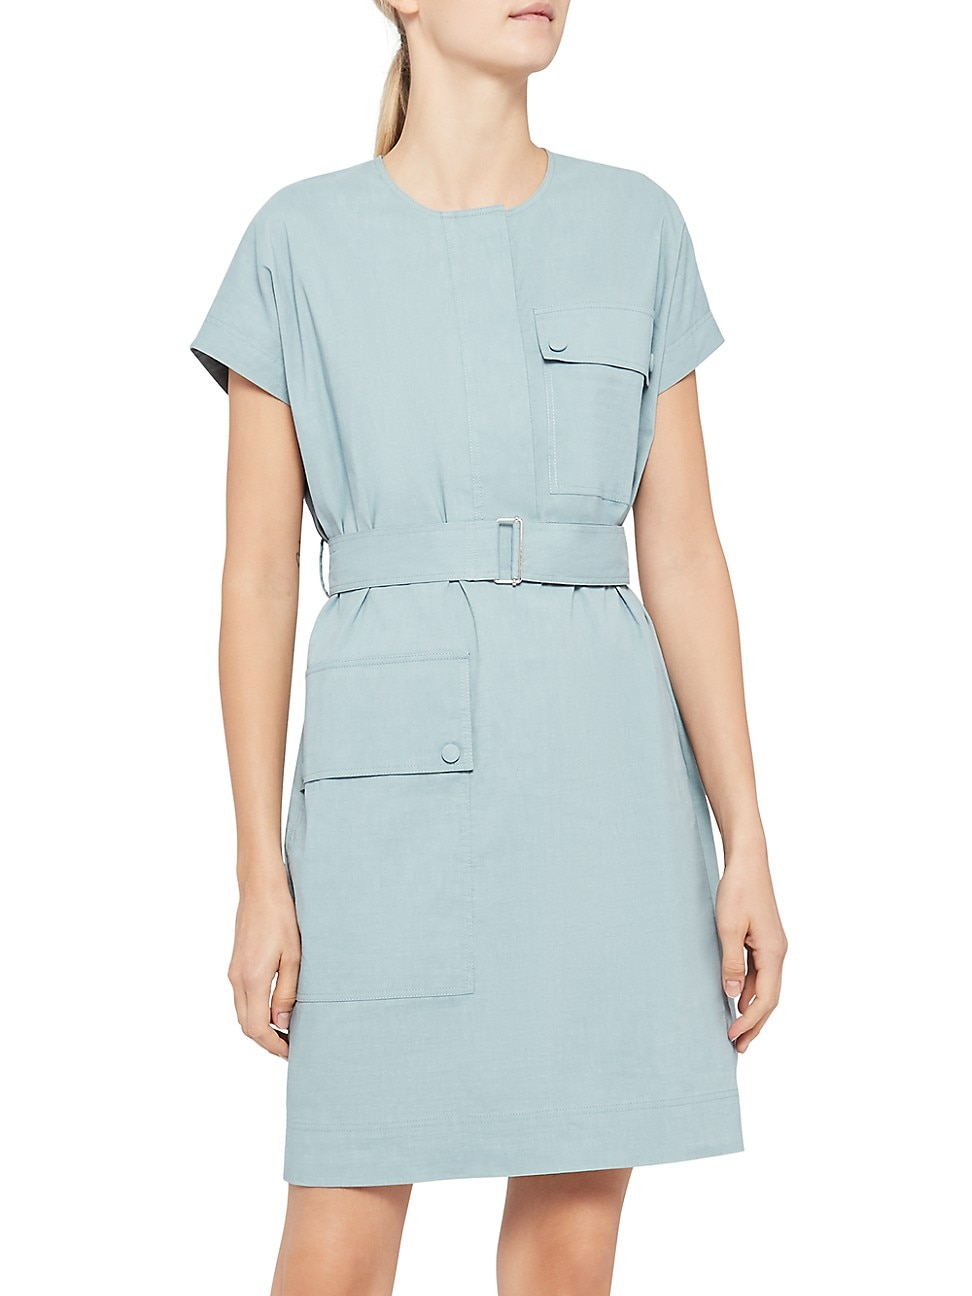 Theory WOMEN'S SHORT SLEEVE UTILITY DRESS